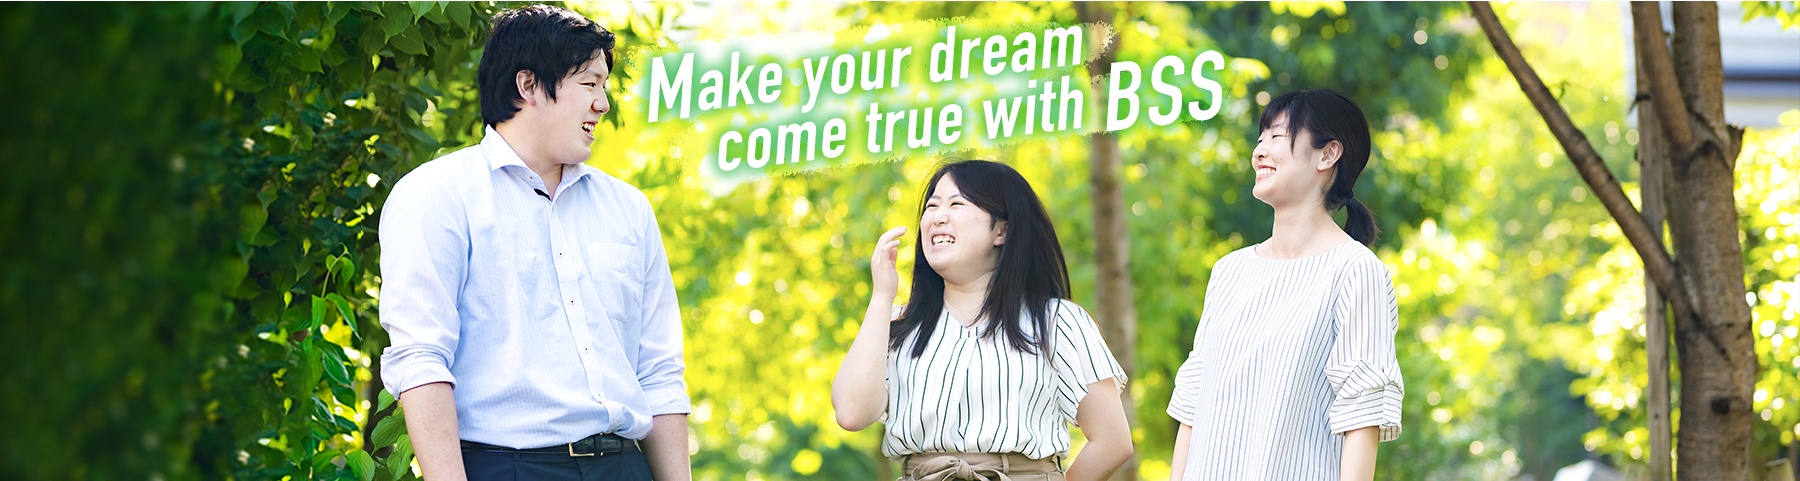 Make your dream come true with BSS